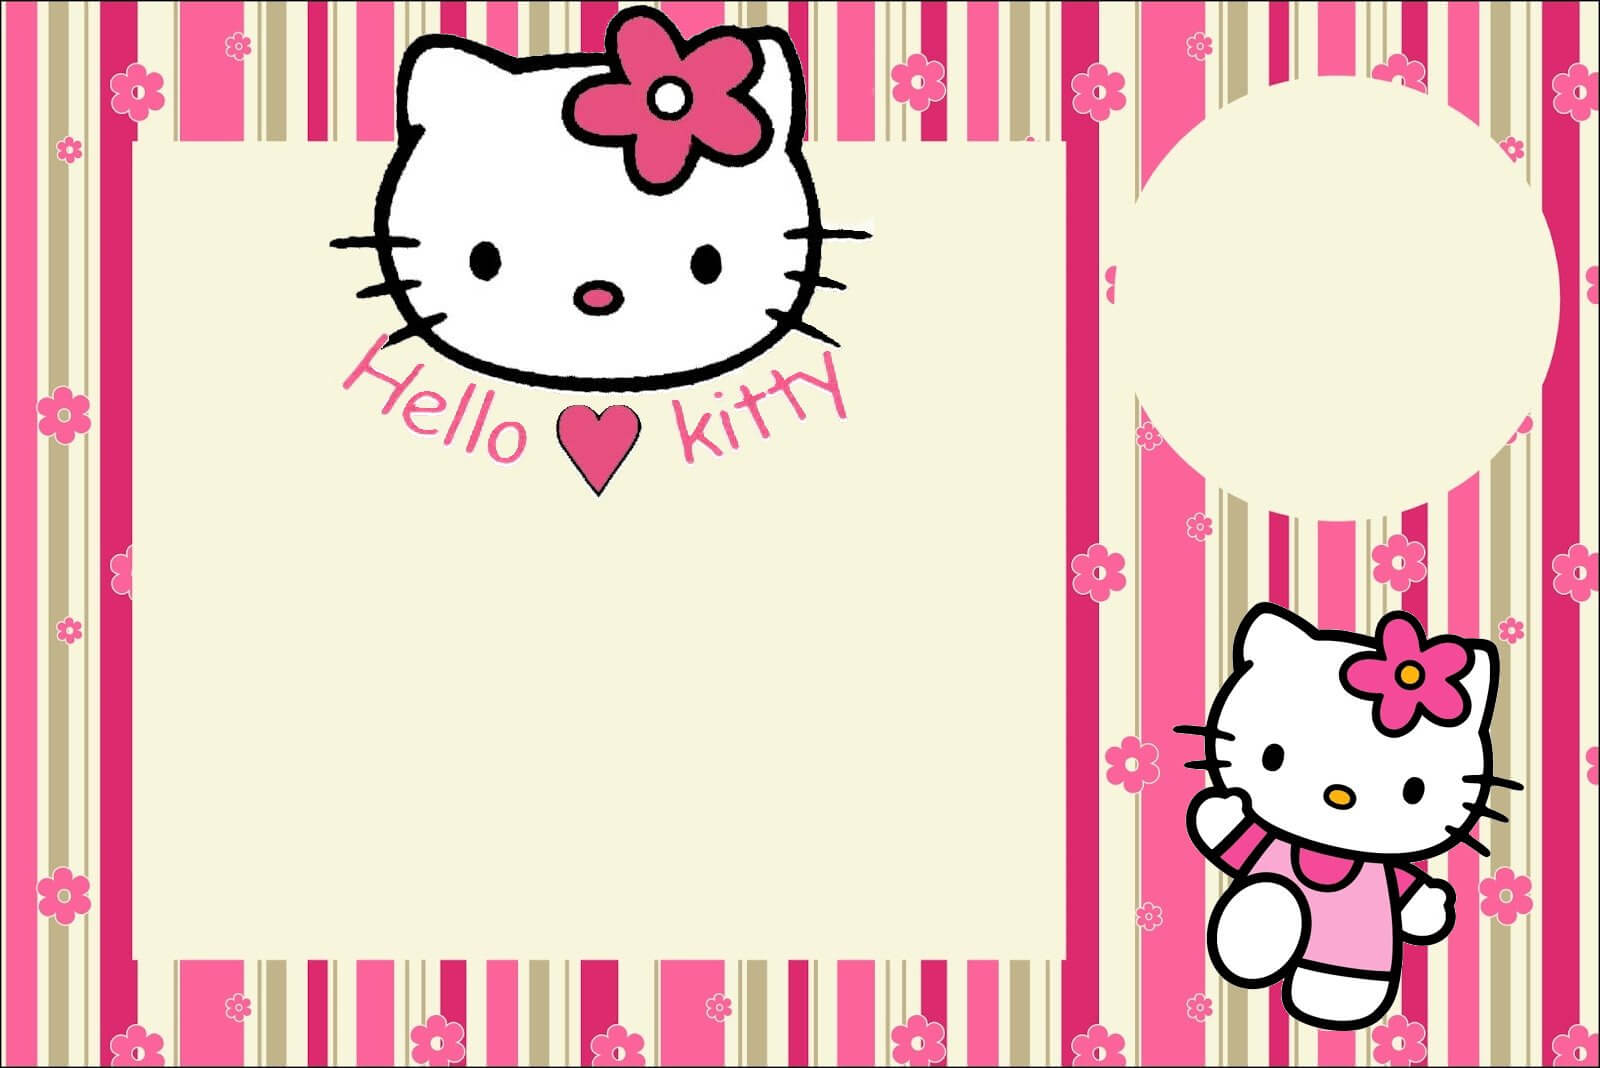 Hello Kitty With Flowers: Free Printable Invitations. – Oh Throughout Hello Kitty Birthday Banner Template Free